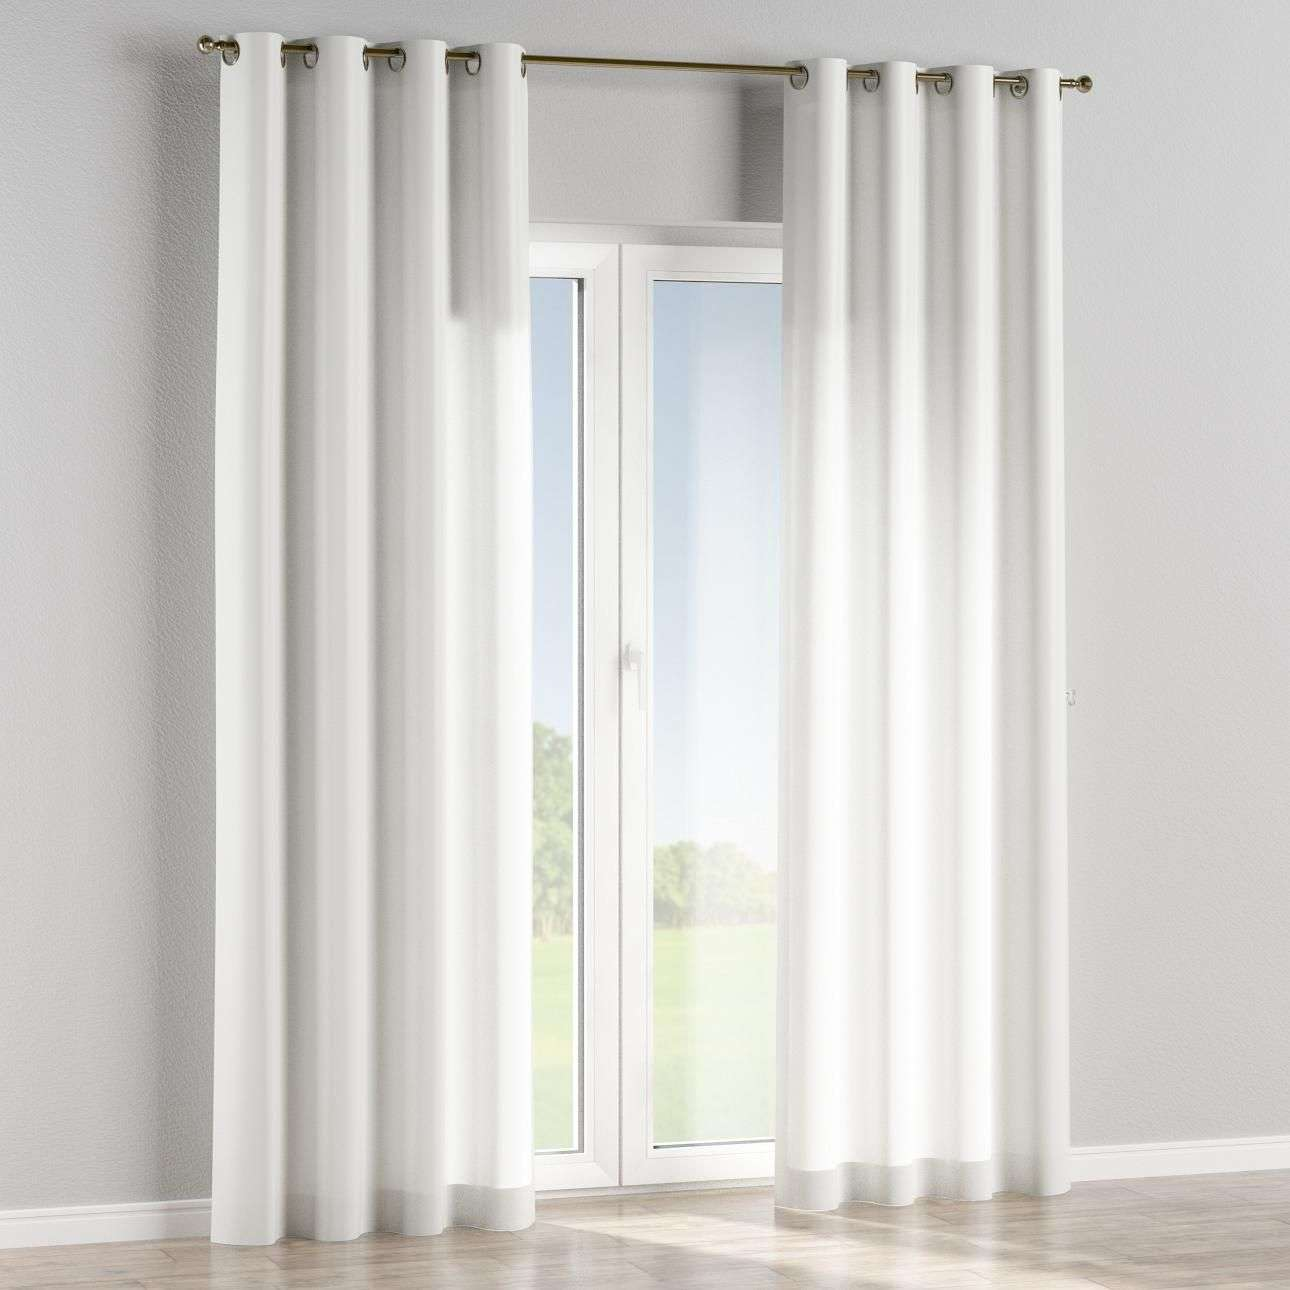 Eyelet curtains in collection Rustica, fabric: 138-10